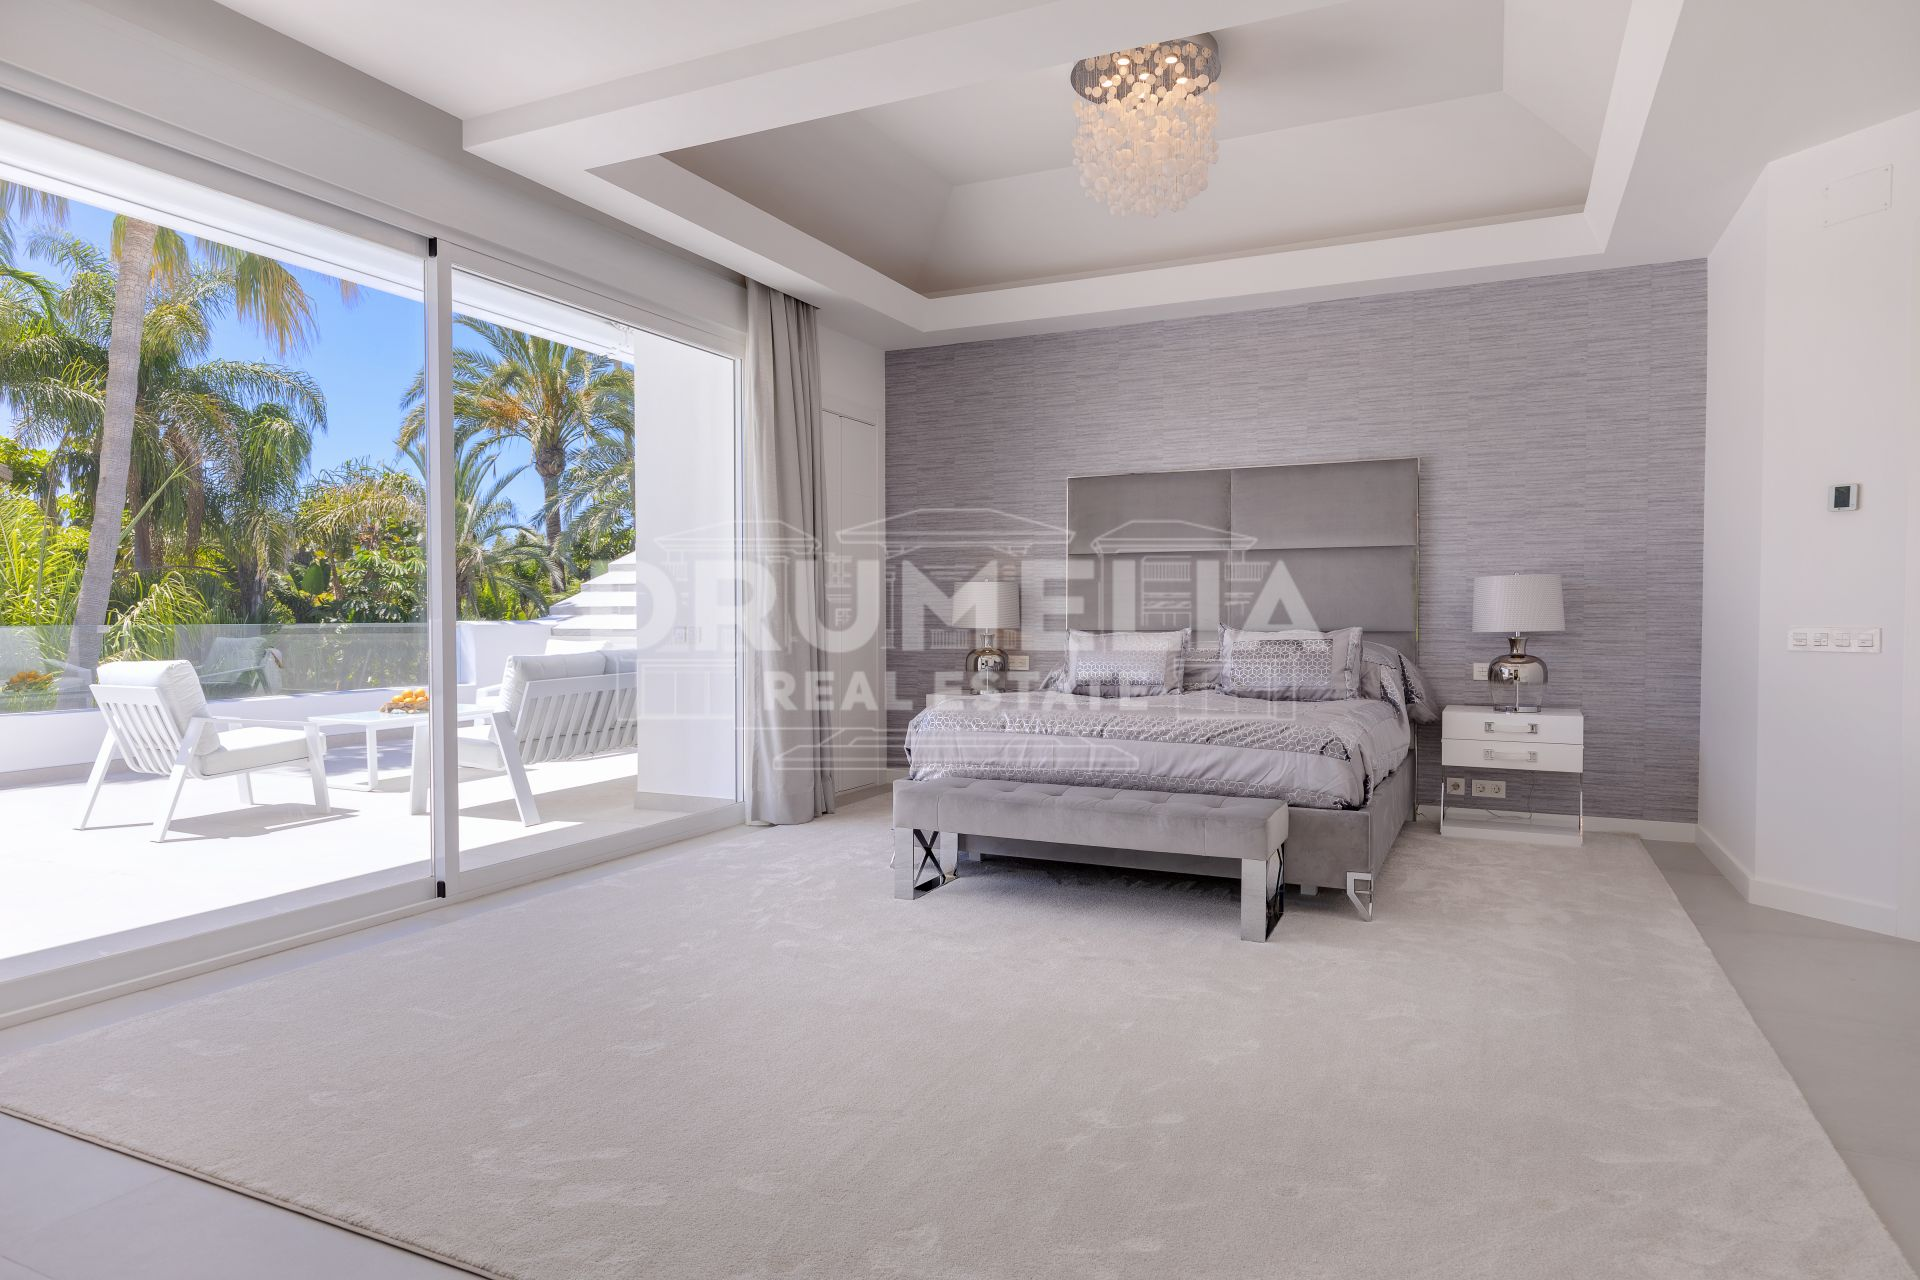 San Pedro de Alcantara, Fabulous villa located in a prestigious part of Guadalmina Baja, Marbella